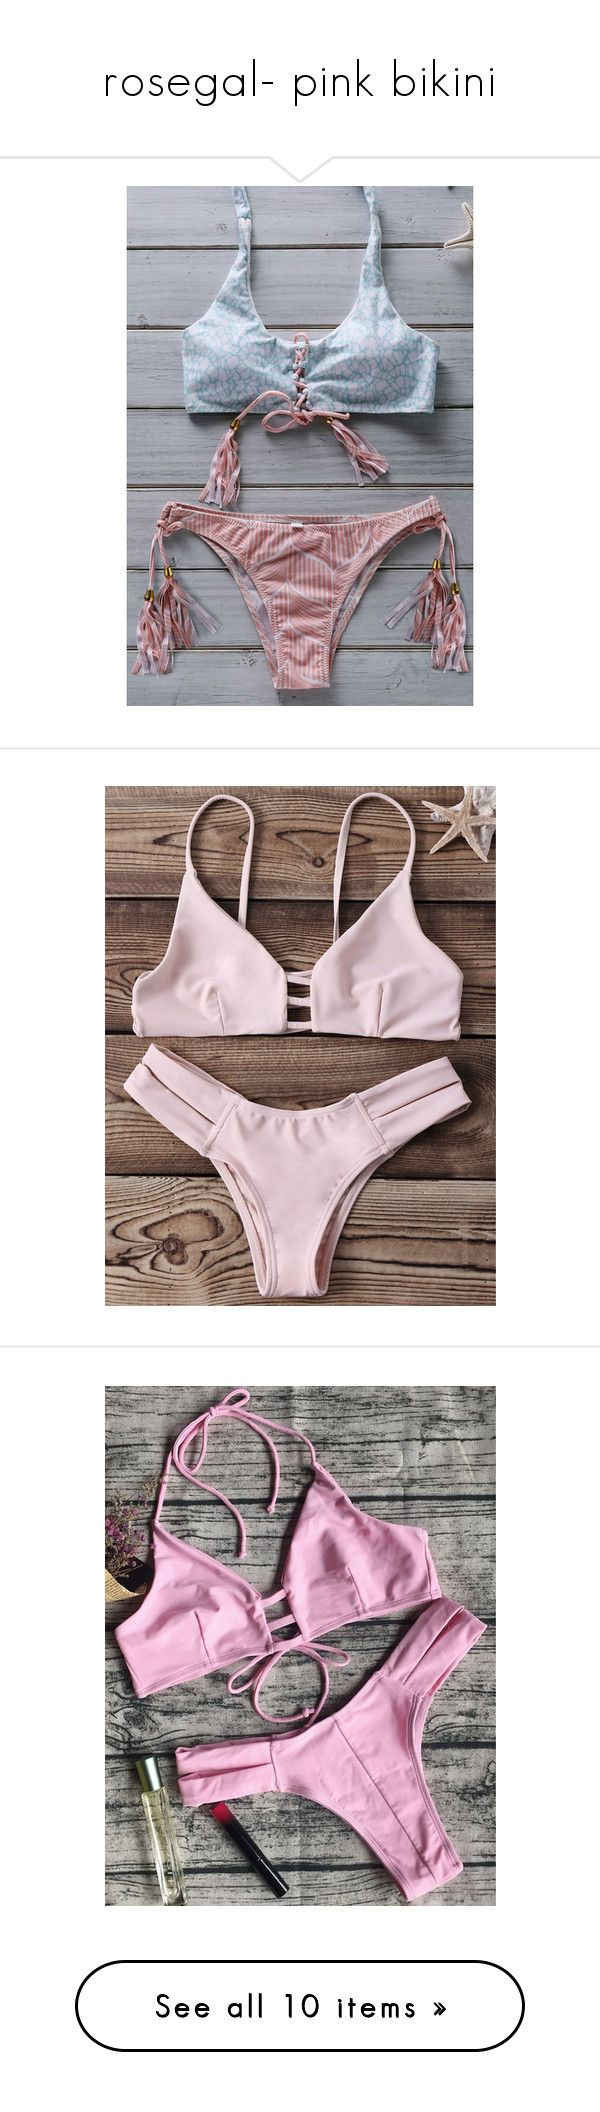 """rosegal- pink bikini"" by fshionme ❤ liked on Polyvore featuring swimwear, bikinis, floral swimwear, floral bikini swimwear, halter bikini swimwear, halter top, halter-neck bikinis, strappy cut out bikini, cut-out swimwear and bikini two piece"